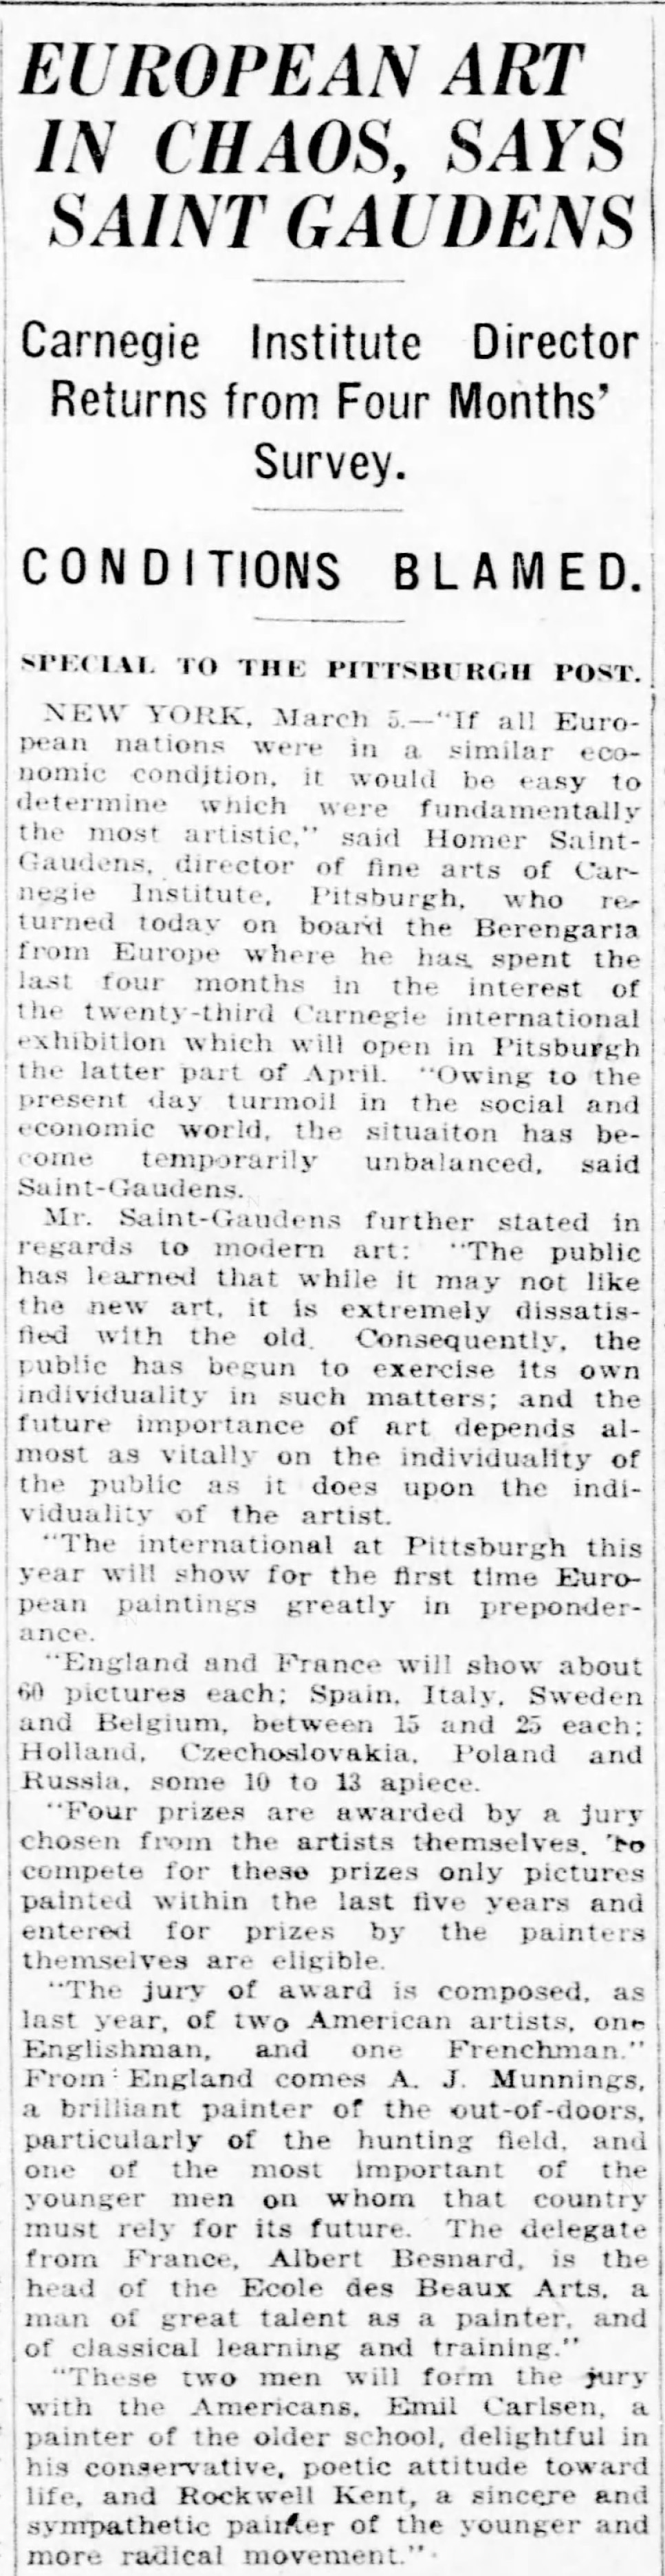 """Pittsburgh Daily Post, Pittsburgh, PA, """"European art in chaos, says Saint Gaudens : Carnegie Institute Director returns from four months' survey, conditions blamed"""", Thursday, March 6, 1924, page 13, not illustrated."""